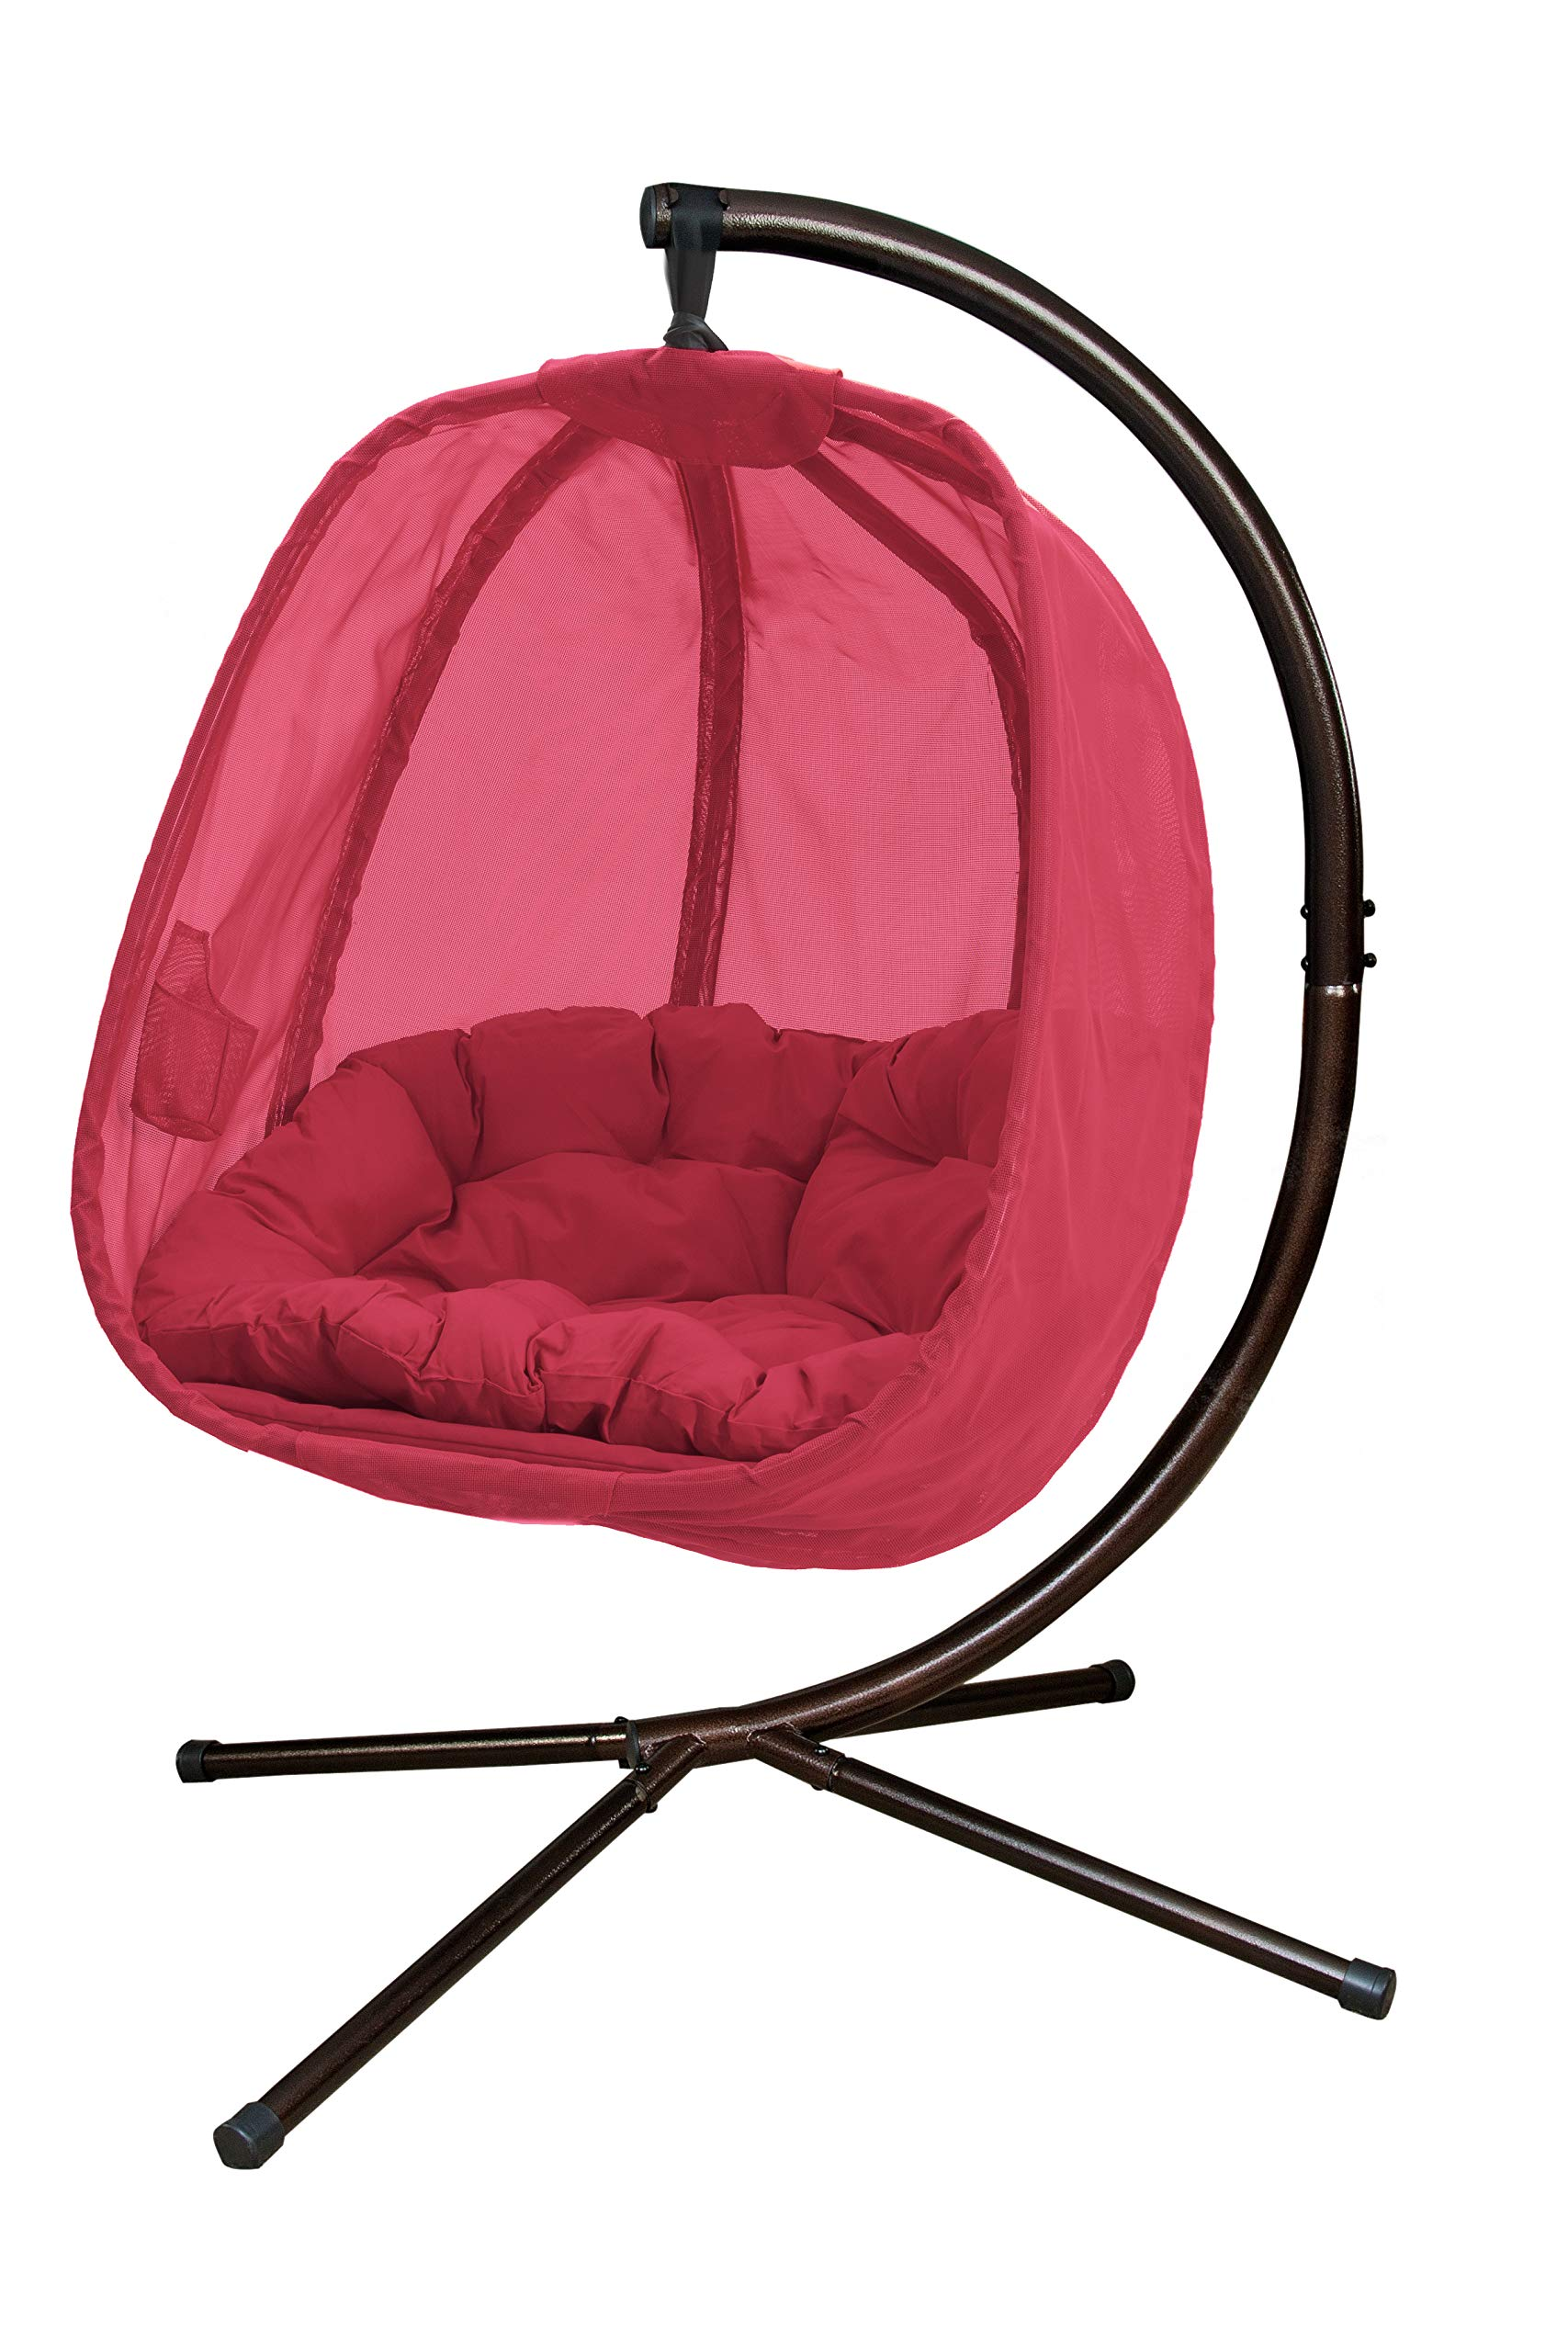 STS SUPPLIES LTD Egg Hammock Chair Swing Accent Outdoor Indoor Lounge Stand Hanging Oval Patio Deck Living Room Lounger Furniture & E Book by Easy 2 Find.